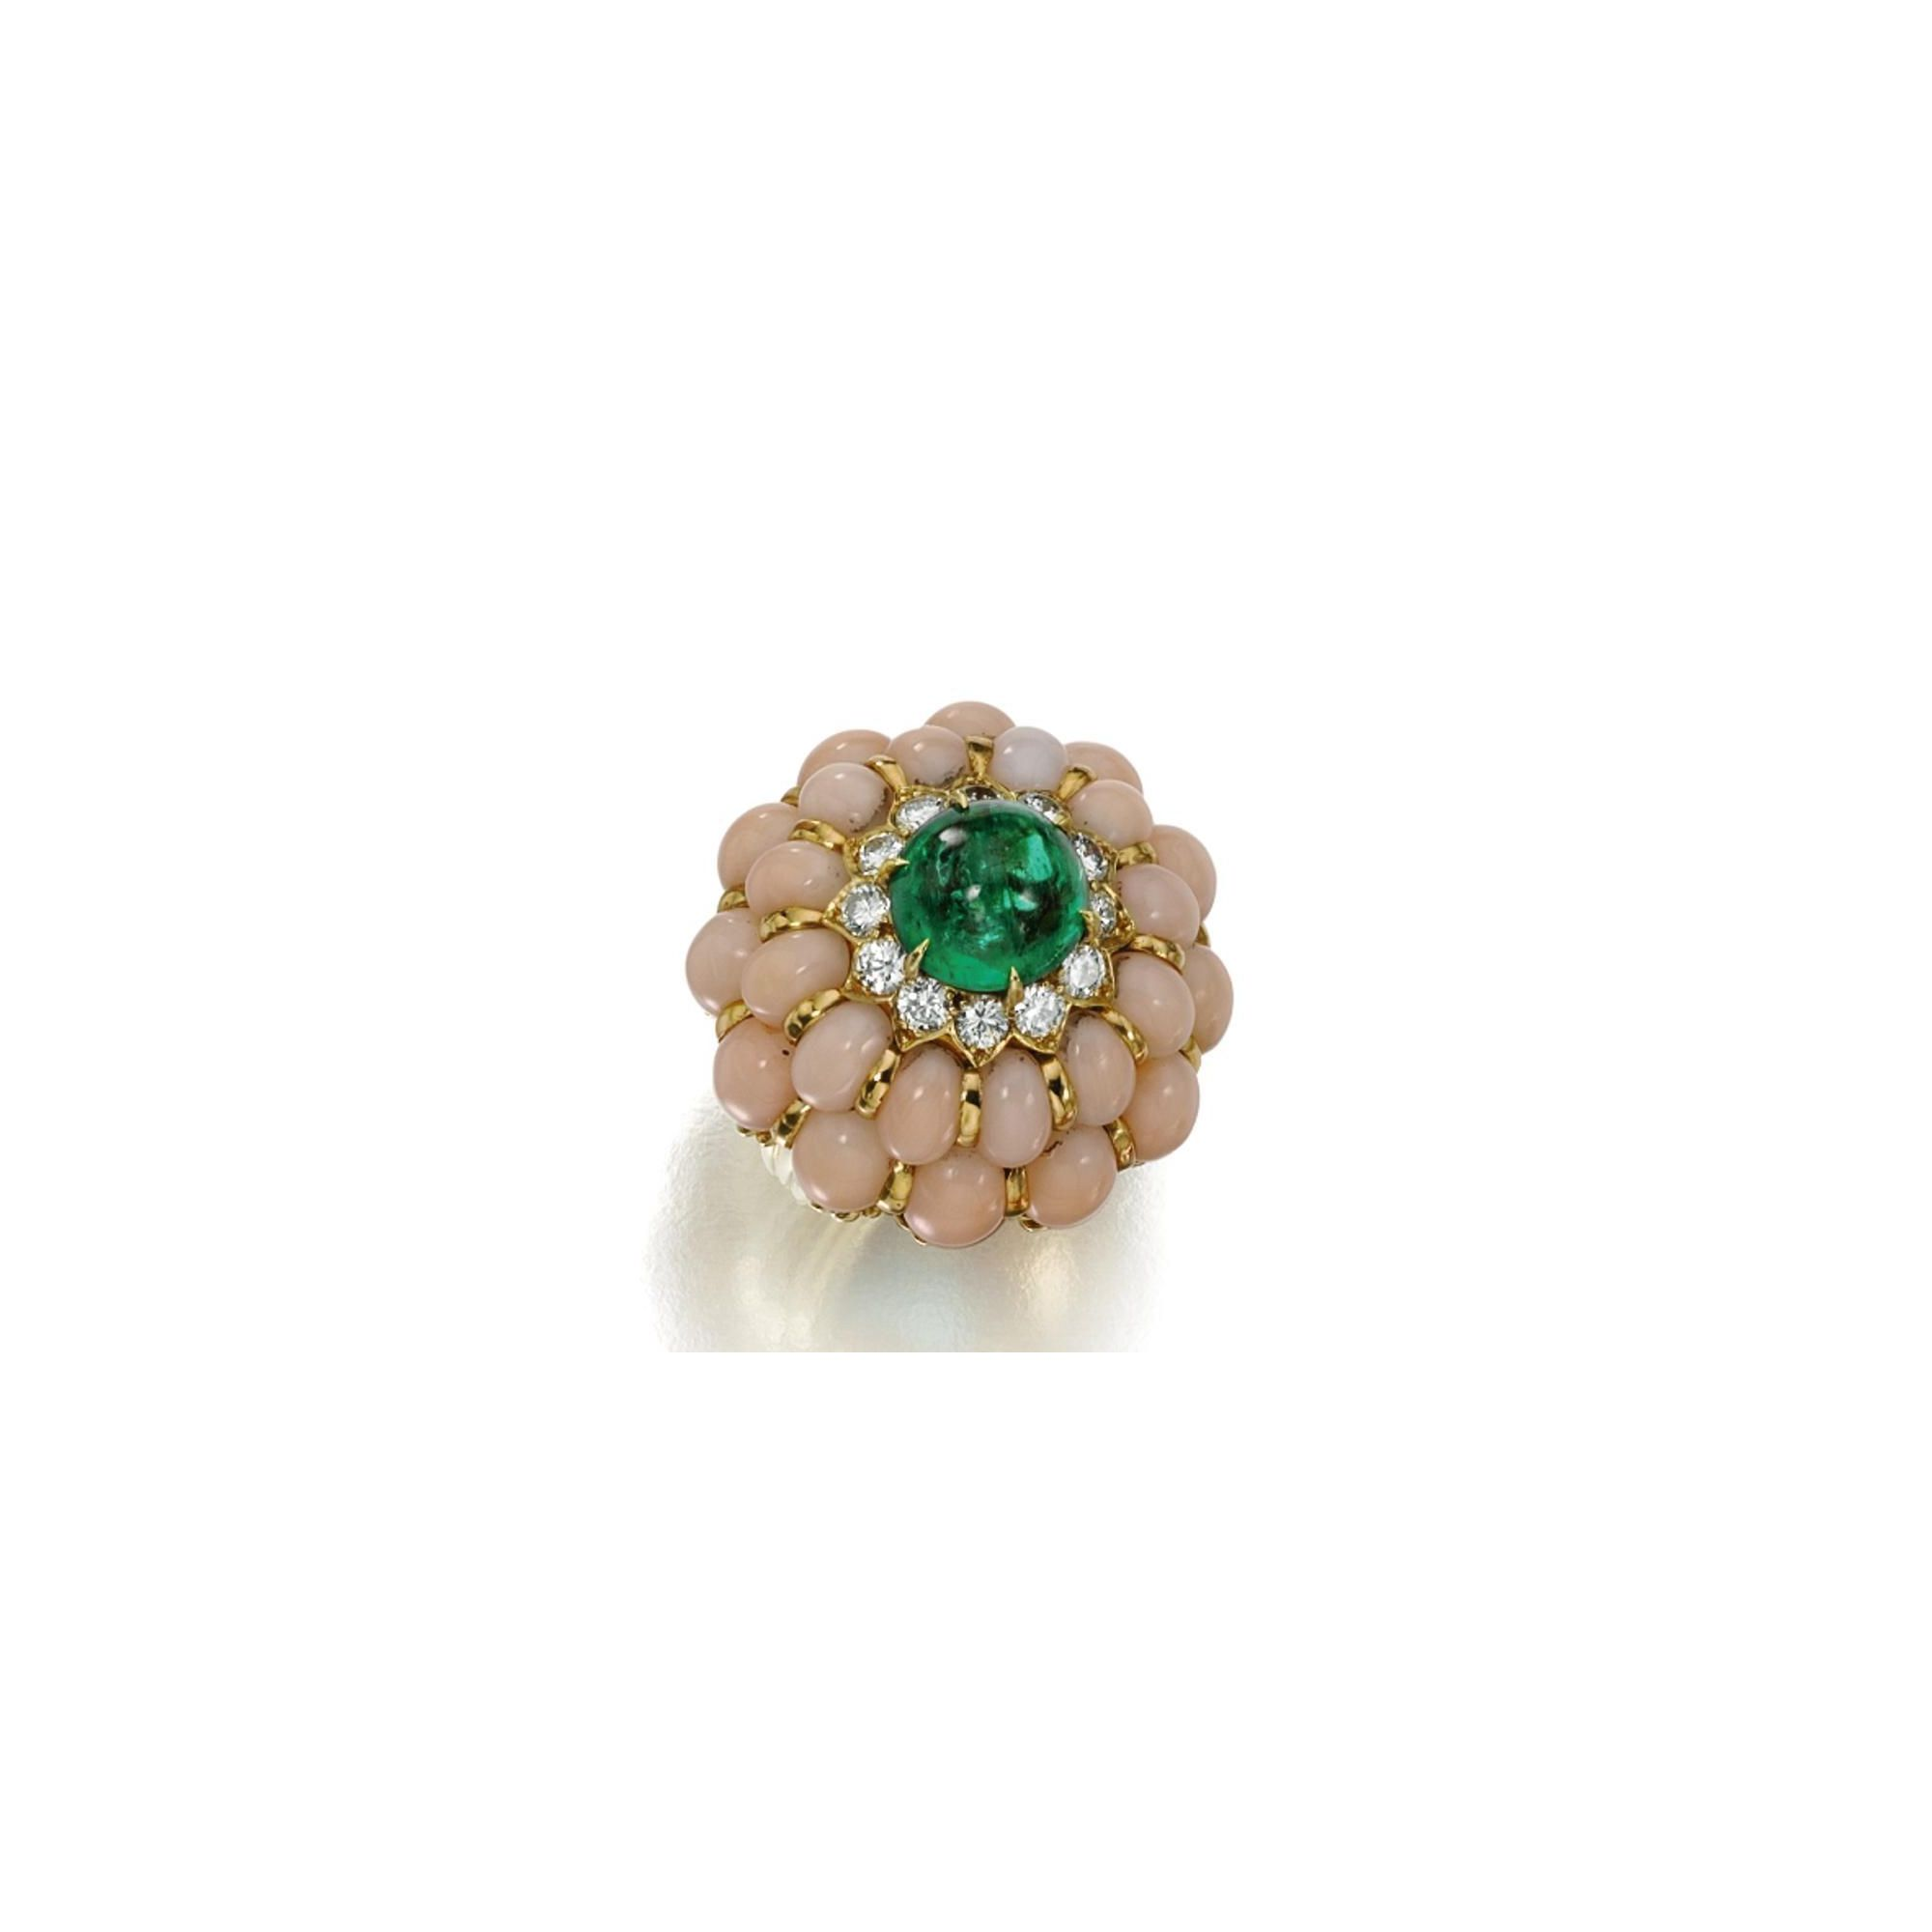 rings fd ring coral gallery multi jewelry diamond david by product druckenmiller gold oneofakind lyst emerald fiona webb